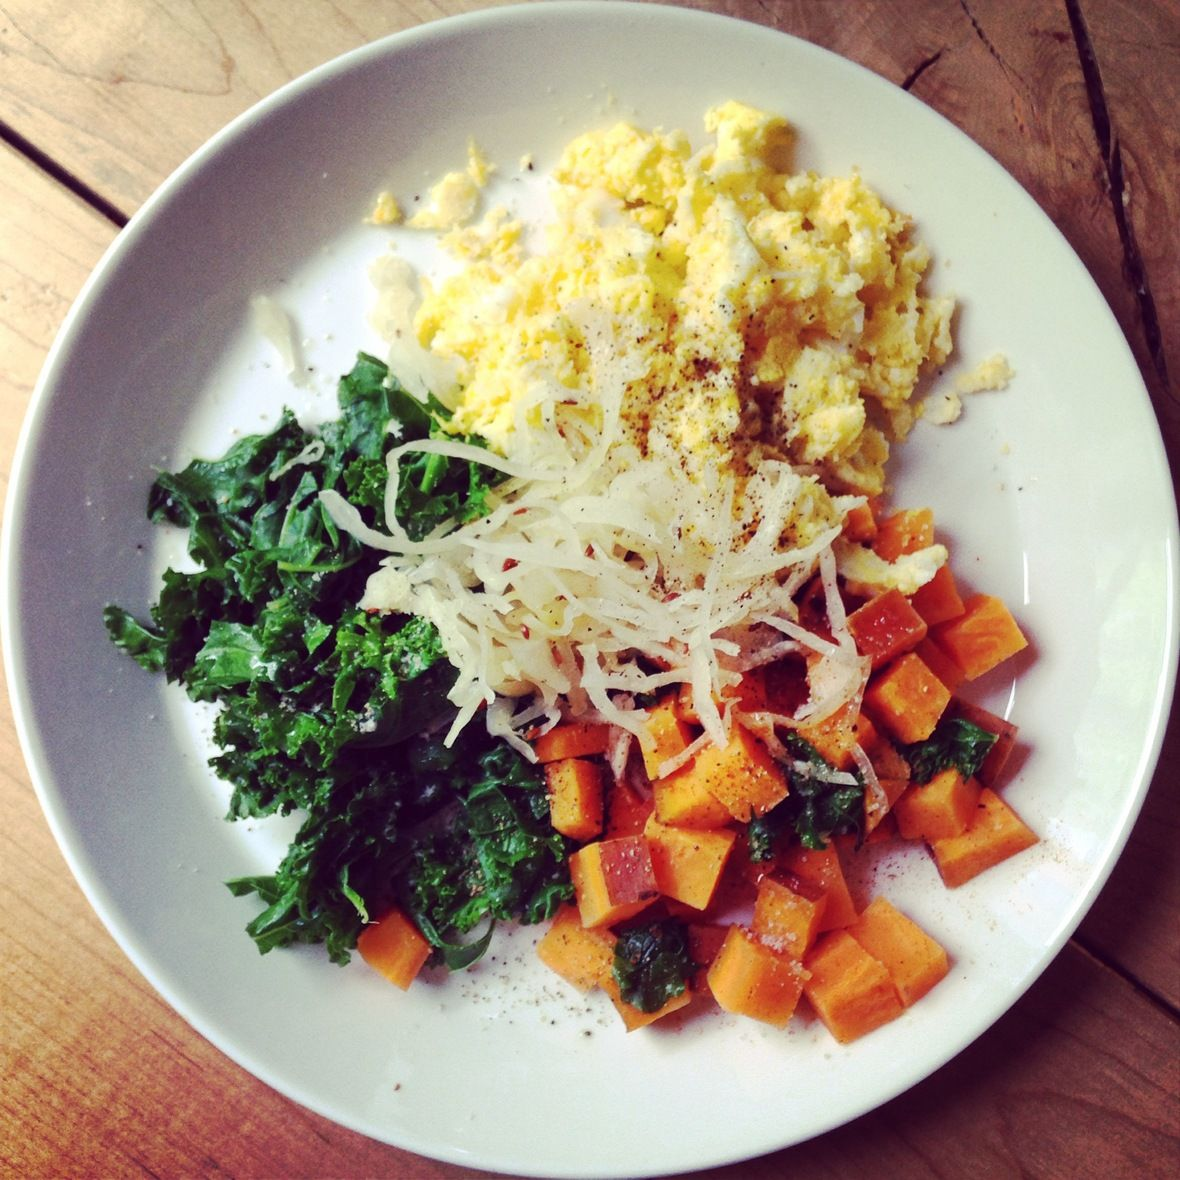 Awesome superhumanbreakfast post from robyn youkilis from your awesome superhumanbreakfast post from robyn youkilis from your healthiest you laurahamesfranklin recipe websitesuniversesciencefood forumfinder Choice Image